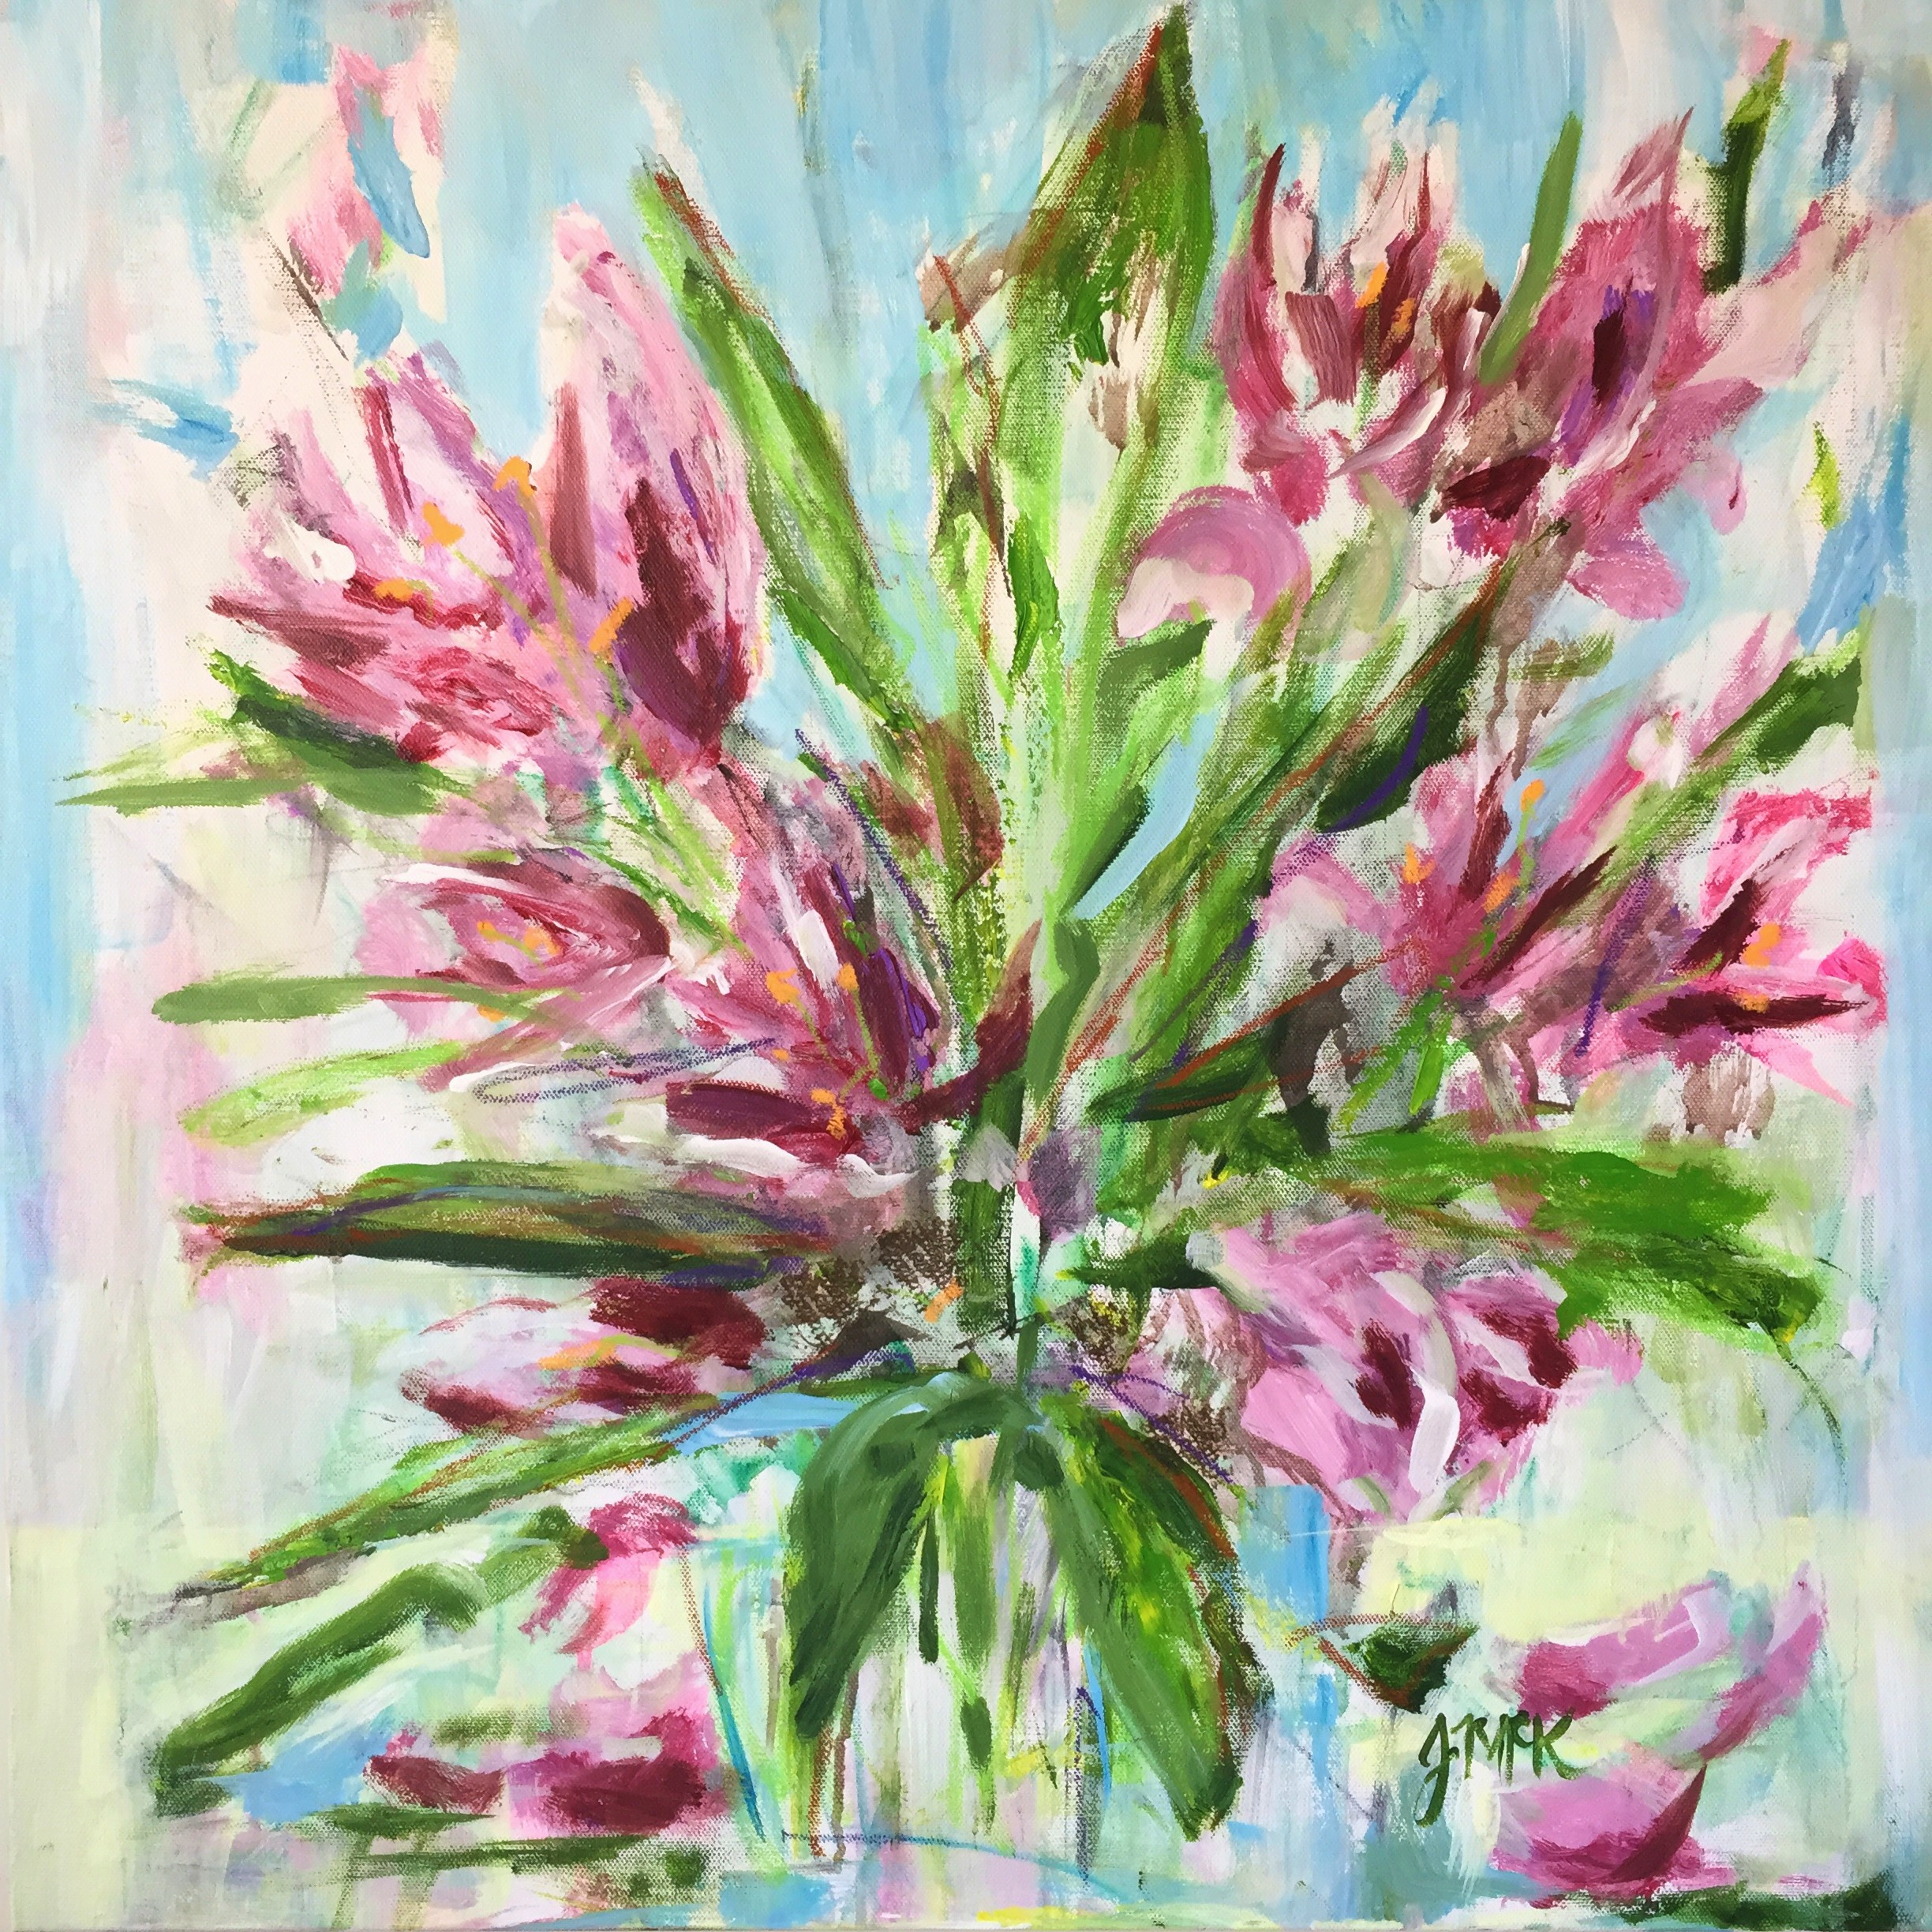 abstract painting of tulip flowers beginning to fade